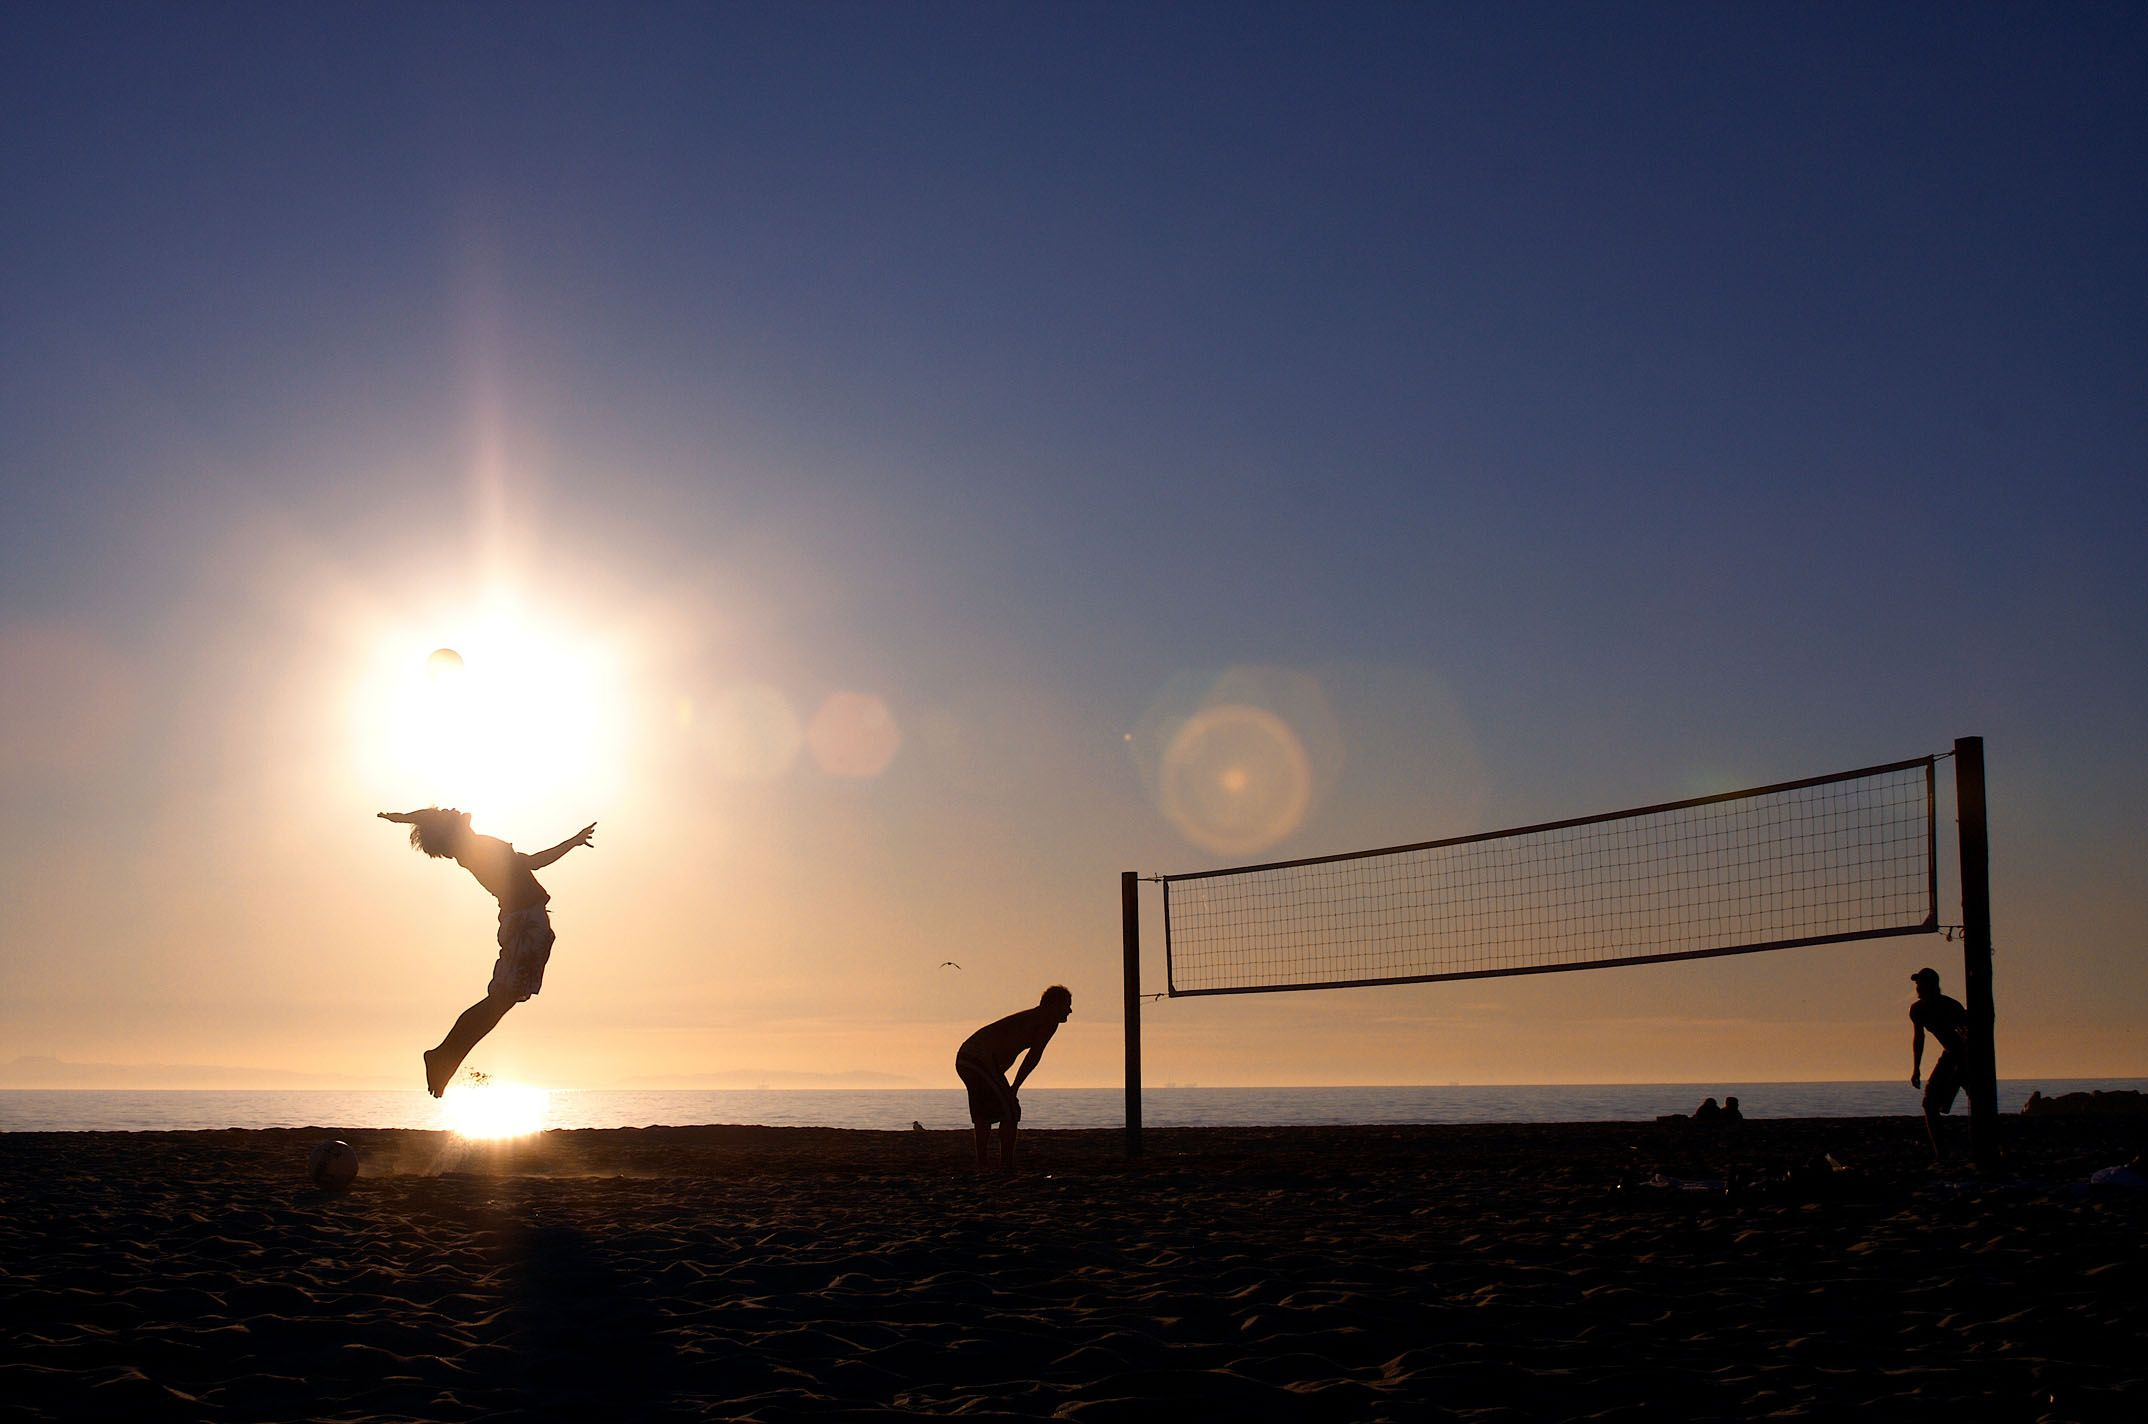 Beach Volleyball Wallpaper 2148 1424 Volleyball Wallpaper 37 Wallpapers Adorable Wallpapers Volleyball Wallpaper Volleyball Images New Wallpaper Hd